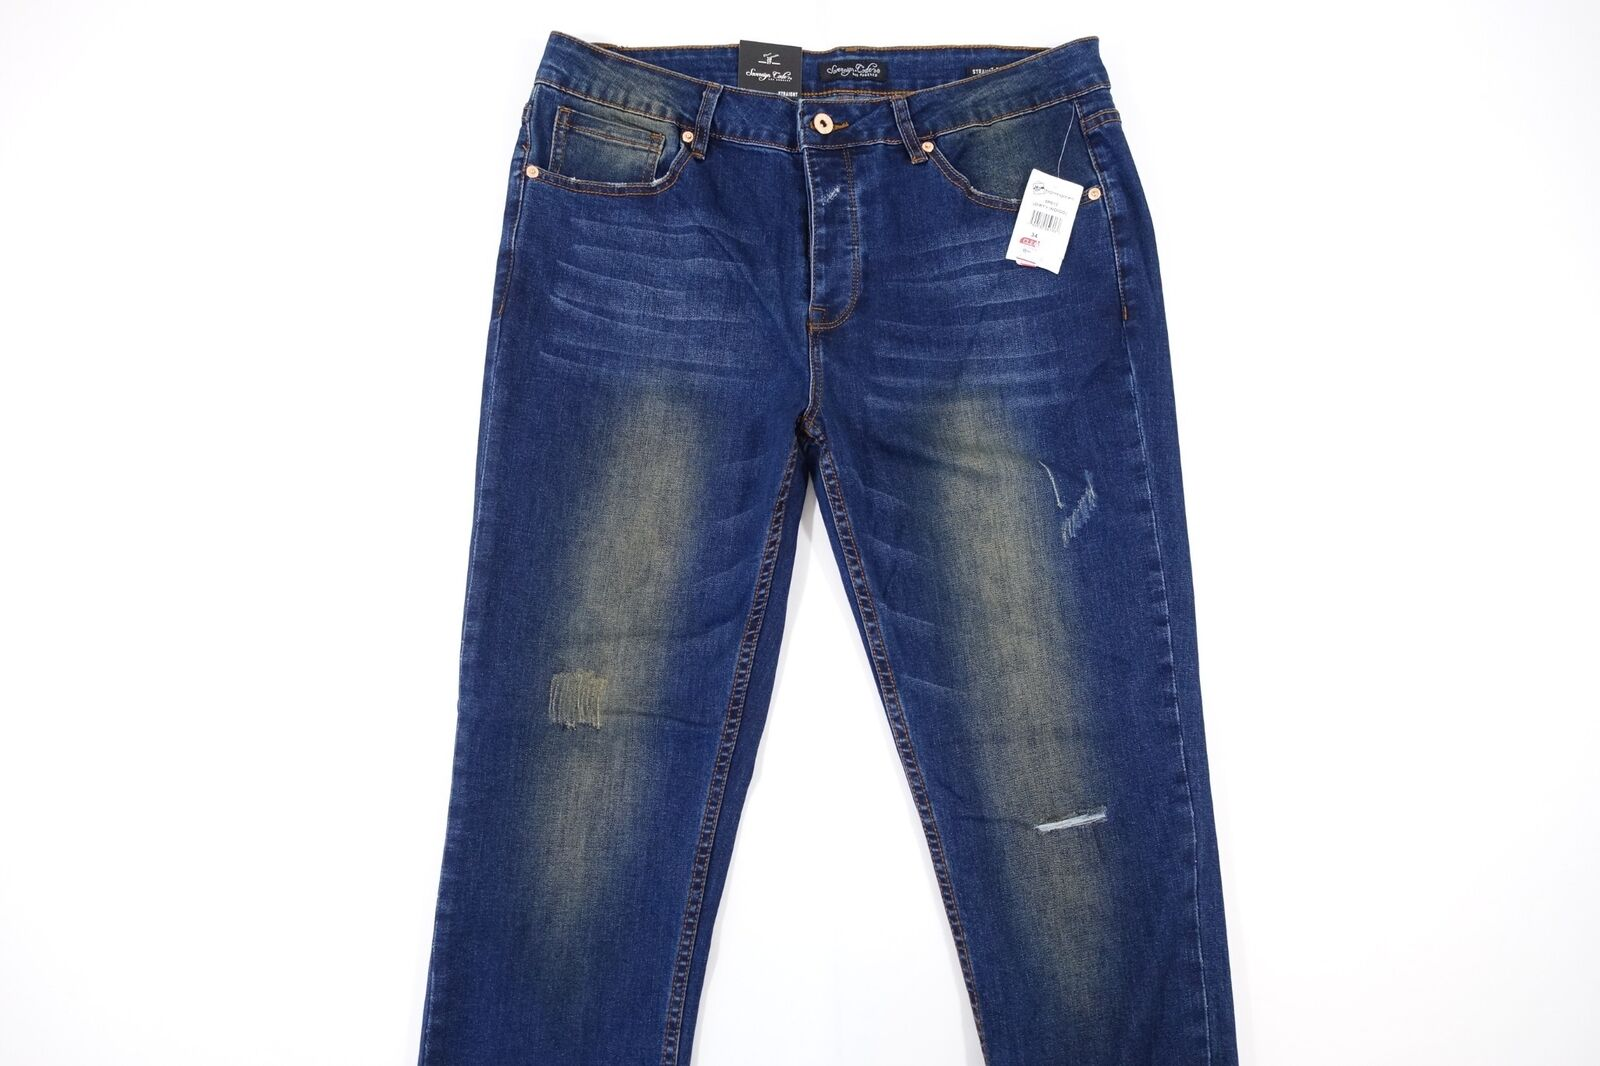 SOVEREIGN CODE FADED DISTRESSED blueE 34 STRAIGHT FIT JEANS MENS NWT NEW